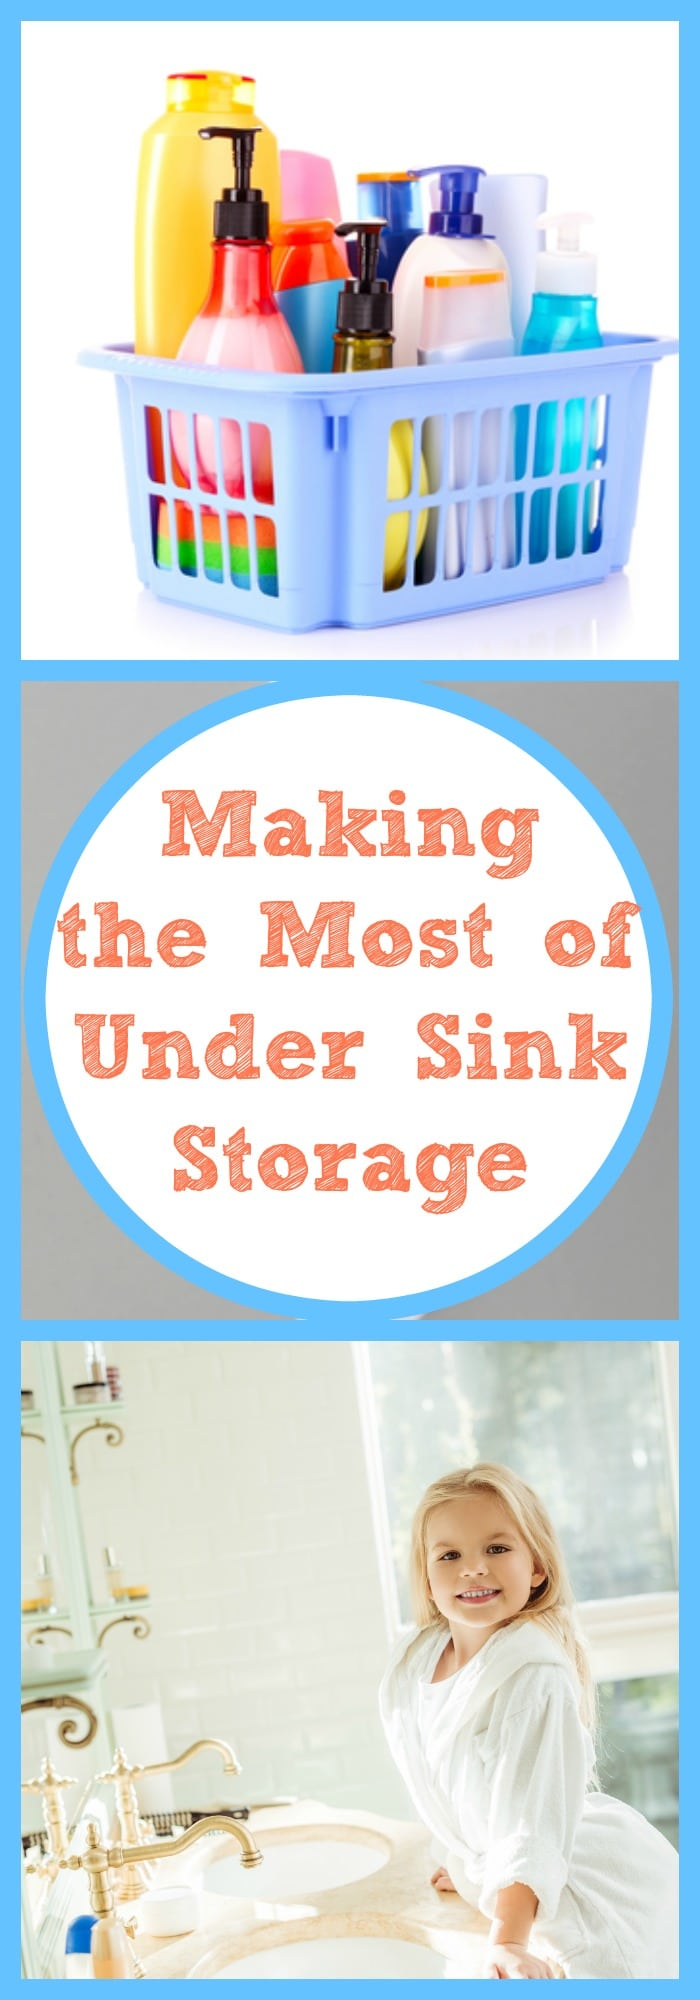 Making the Most of Under Sink Storage